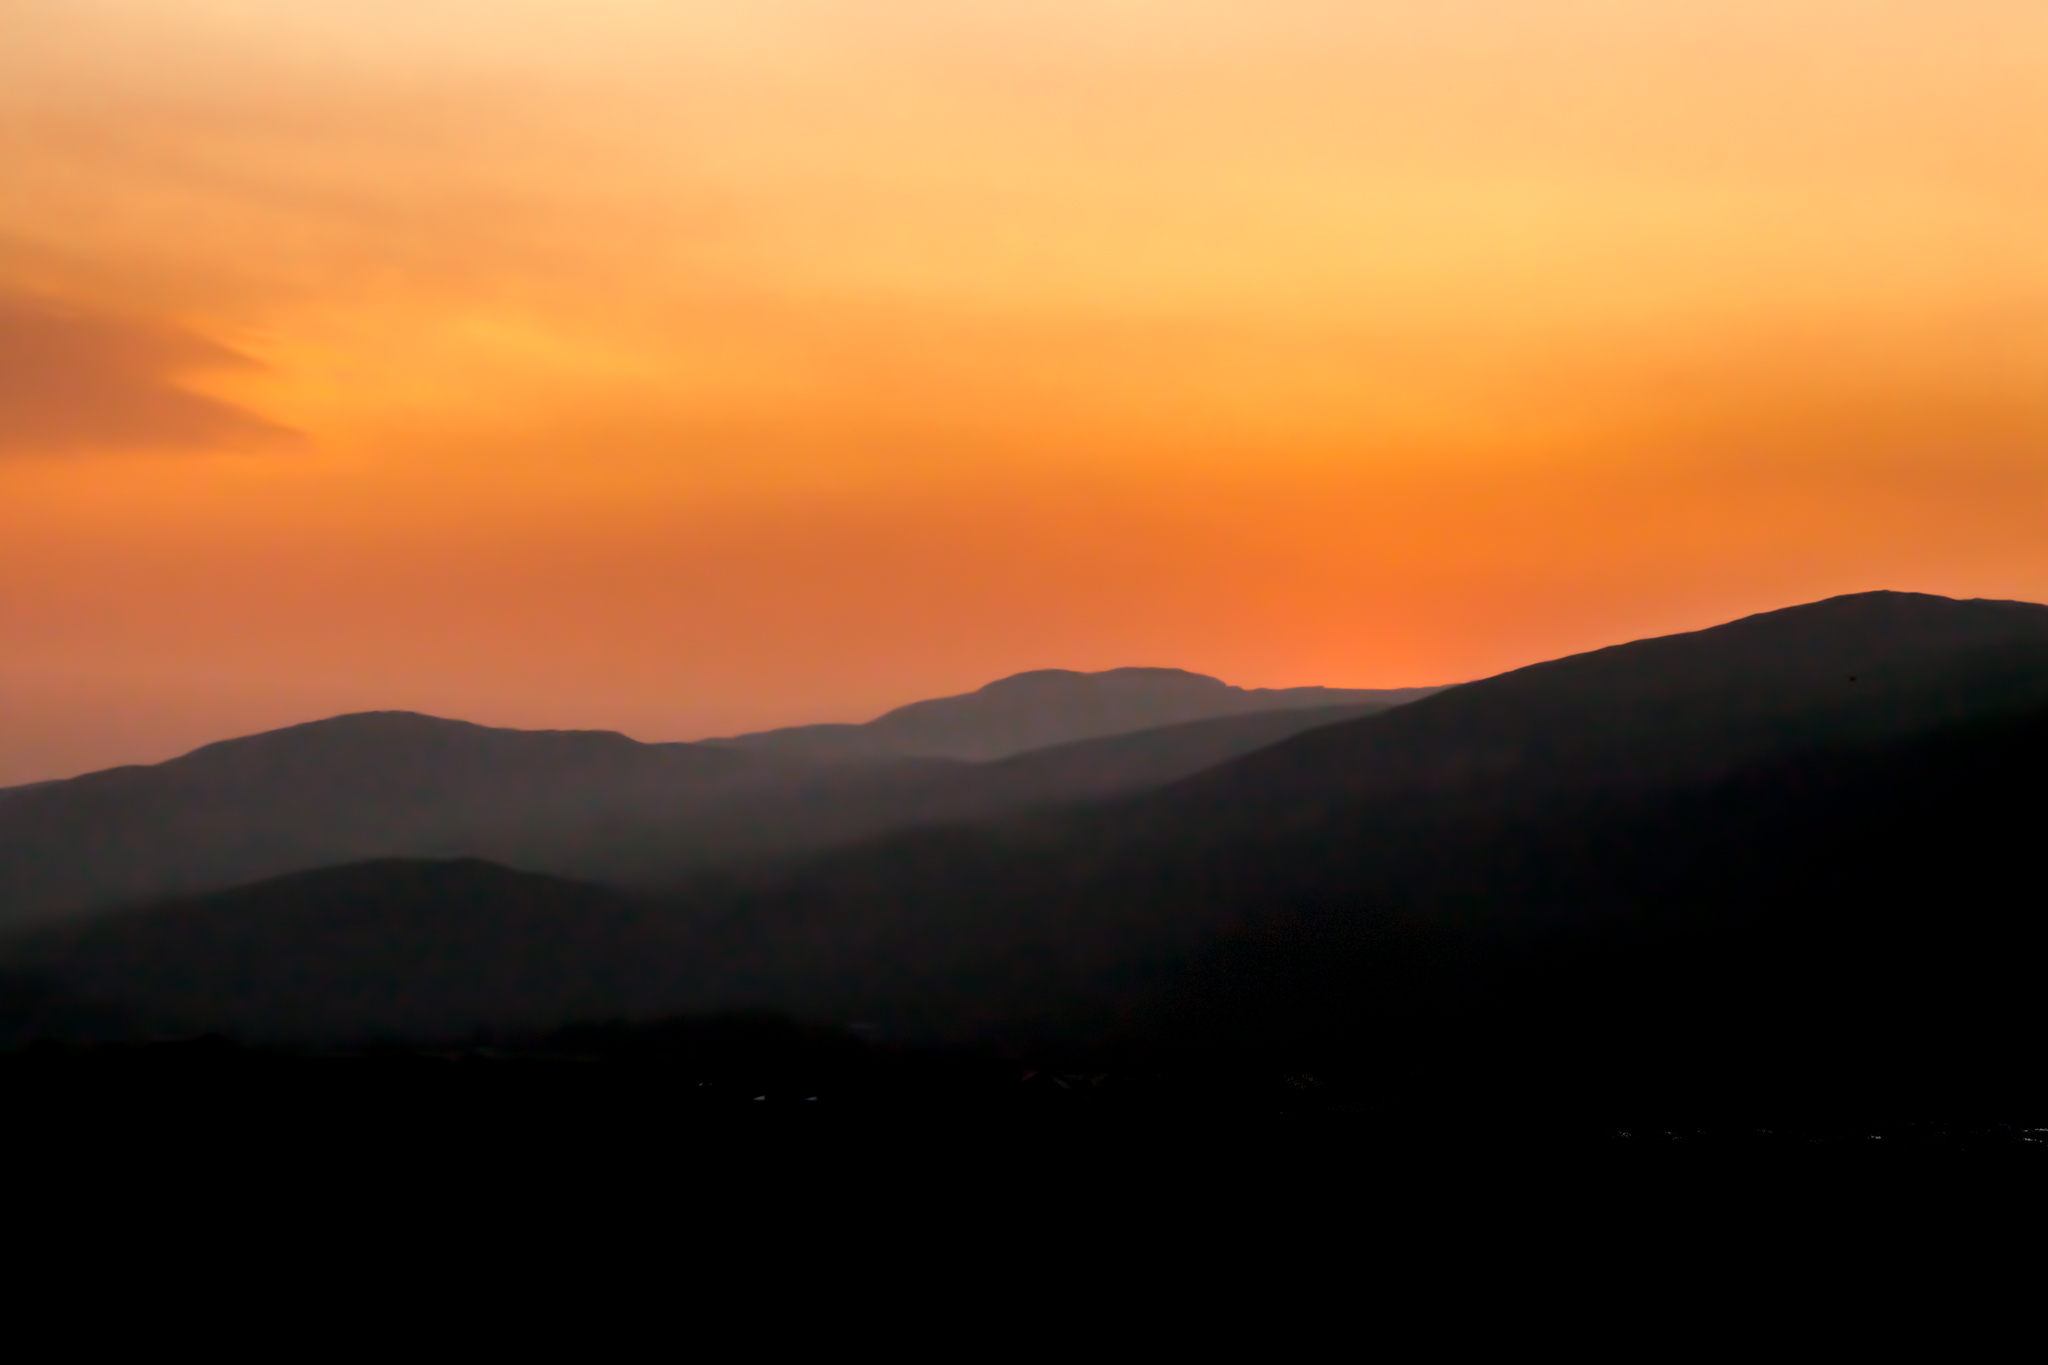 Another sunrise, a warm red and orange sunrise, lights up the mountains behind Harlech in north Wales.